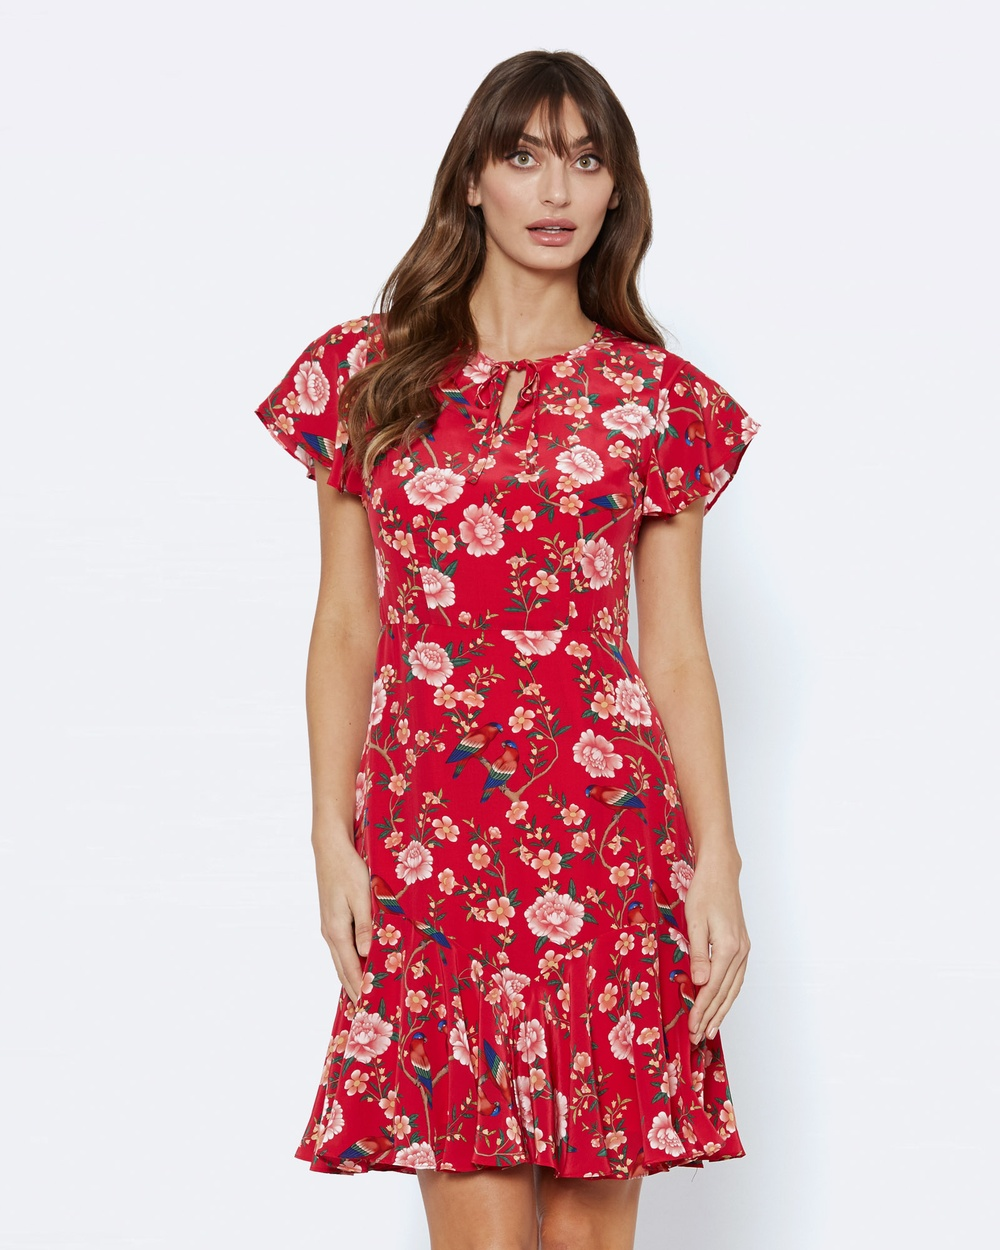 Alannah Hill Her Own Wings Dress Printed Dresses Red Her Own Wings Dress